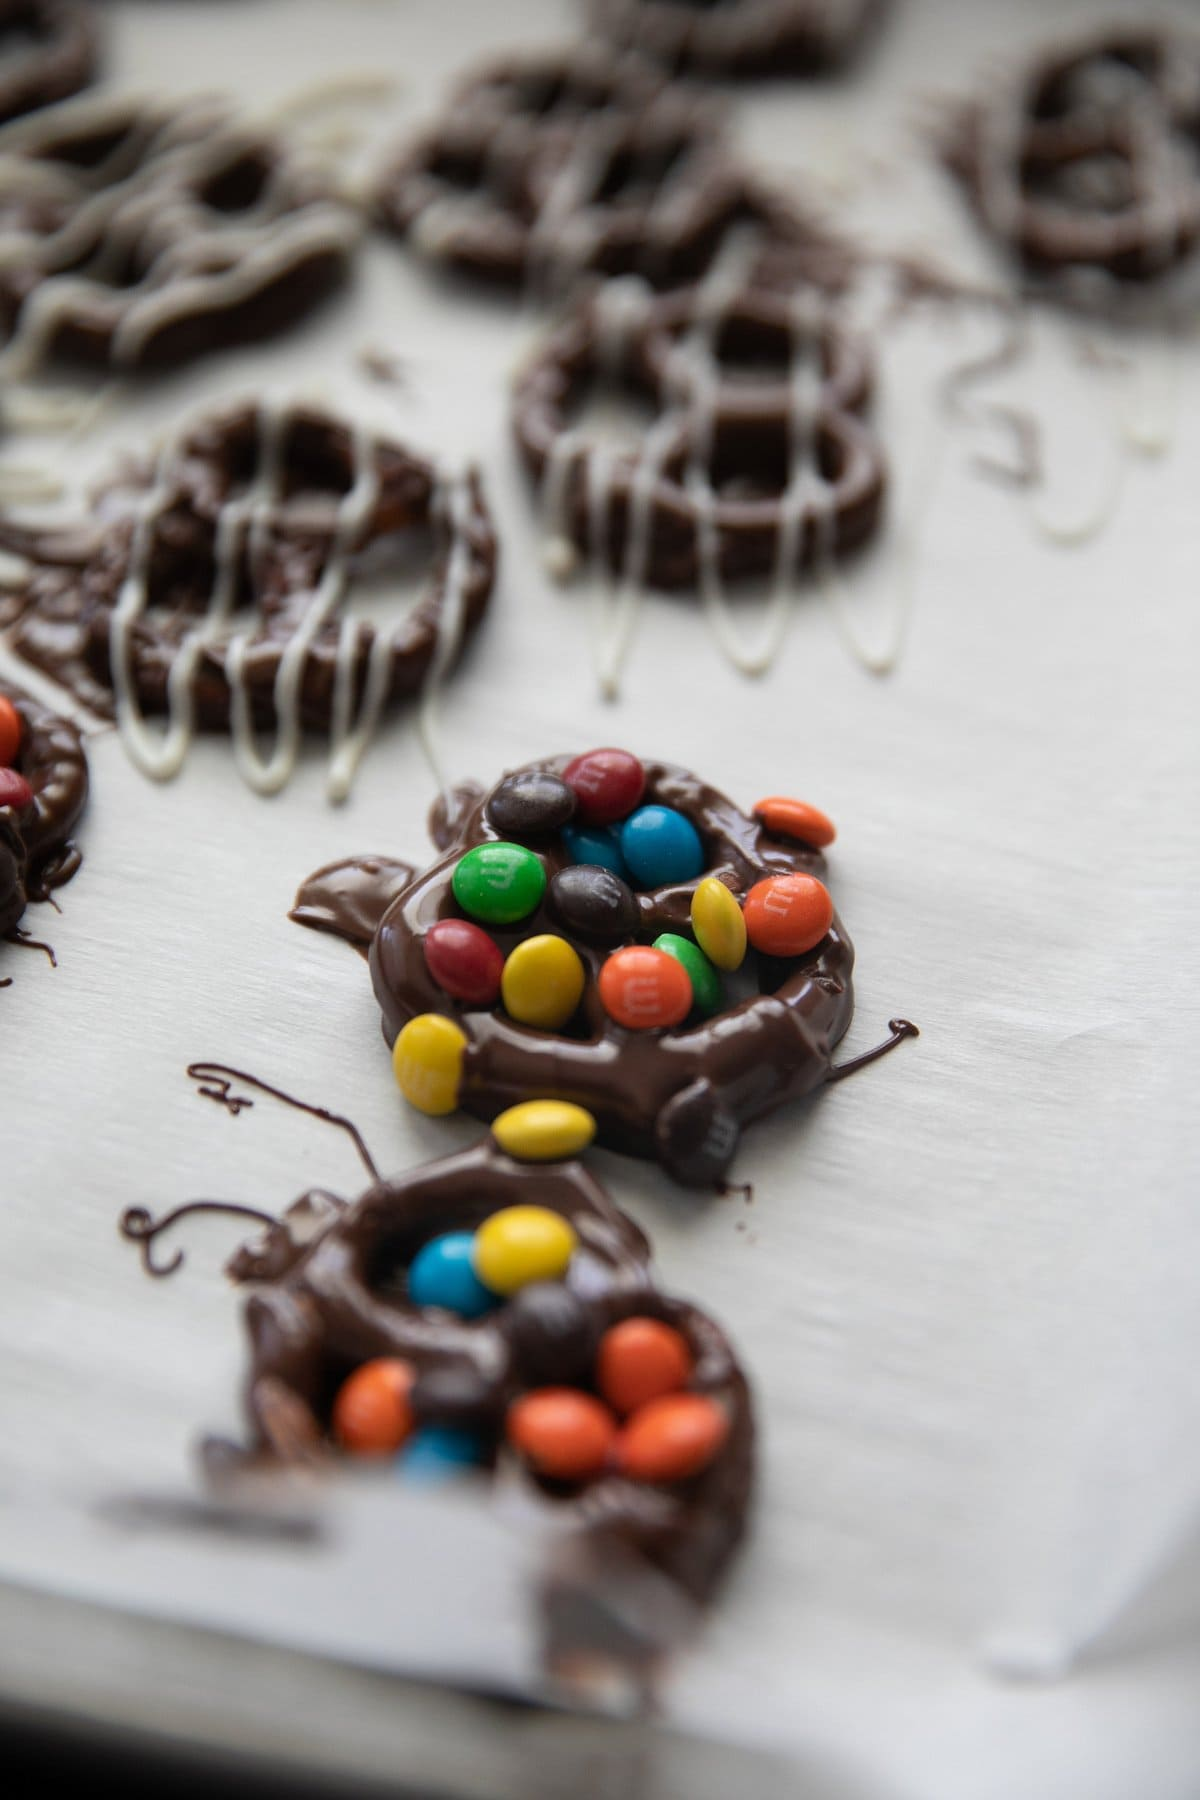 covering chocolate covered pretzels with M&M's